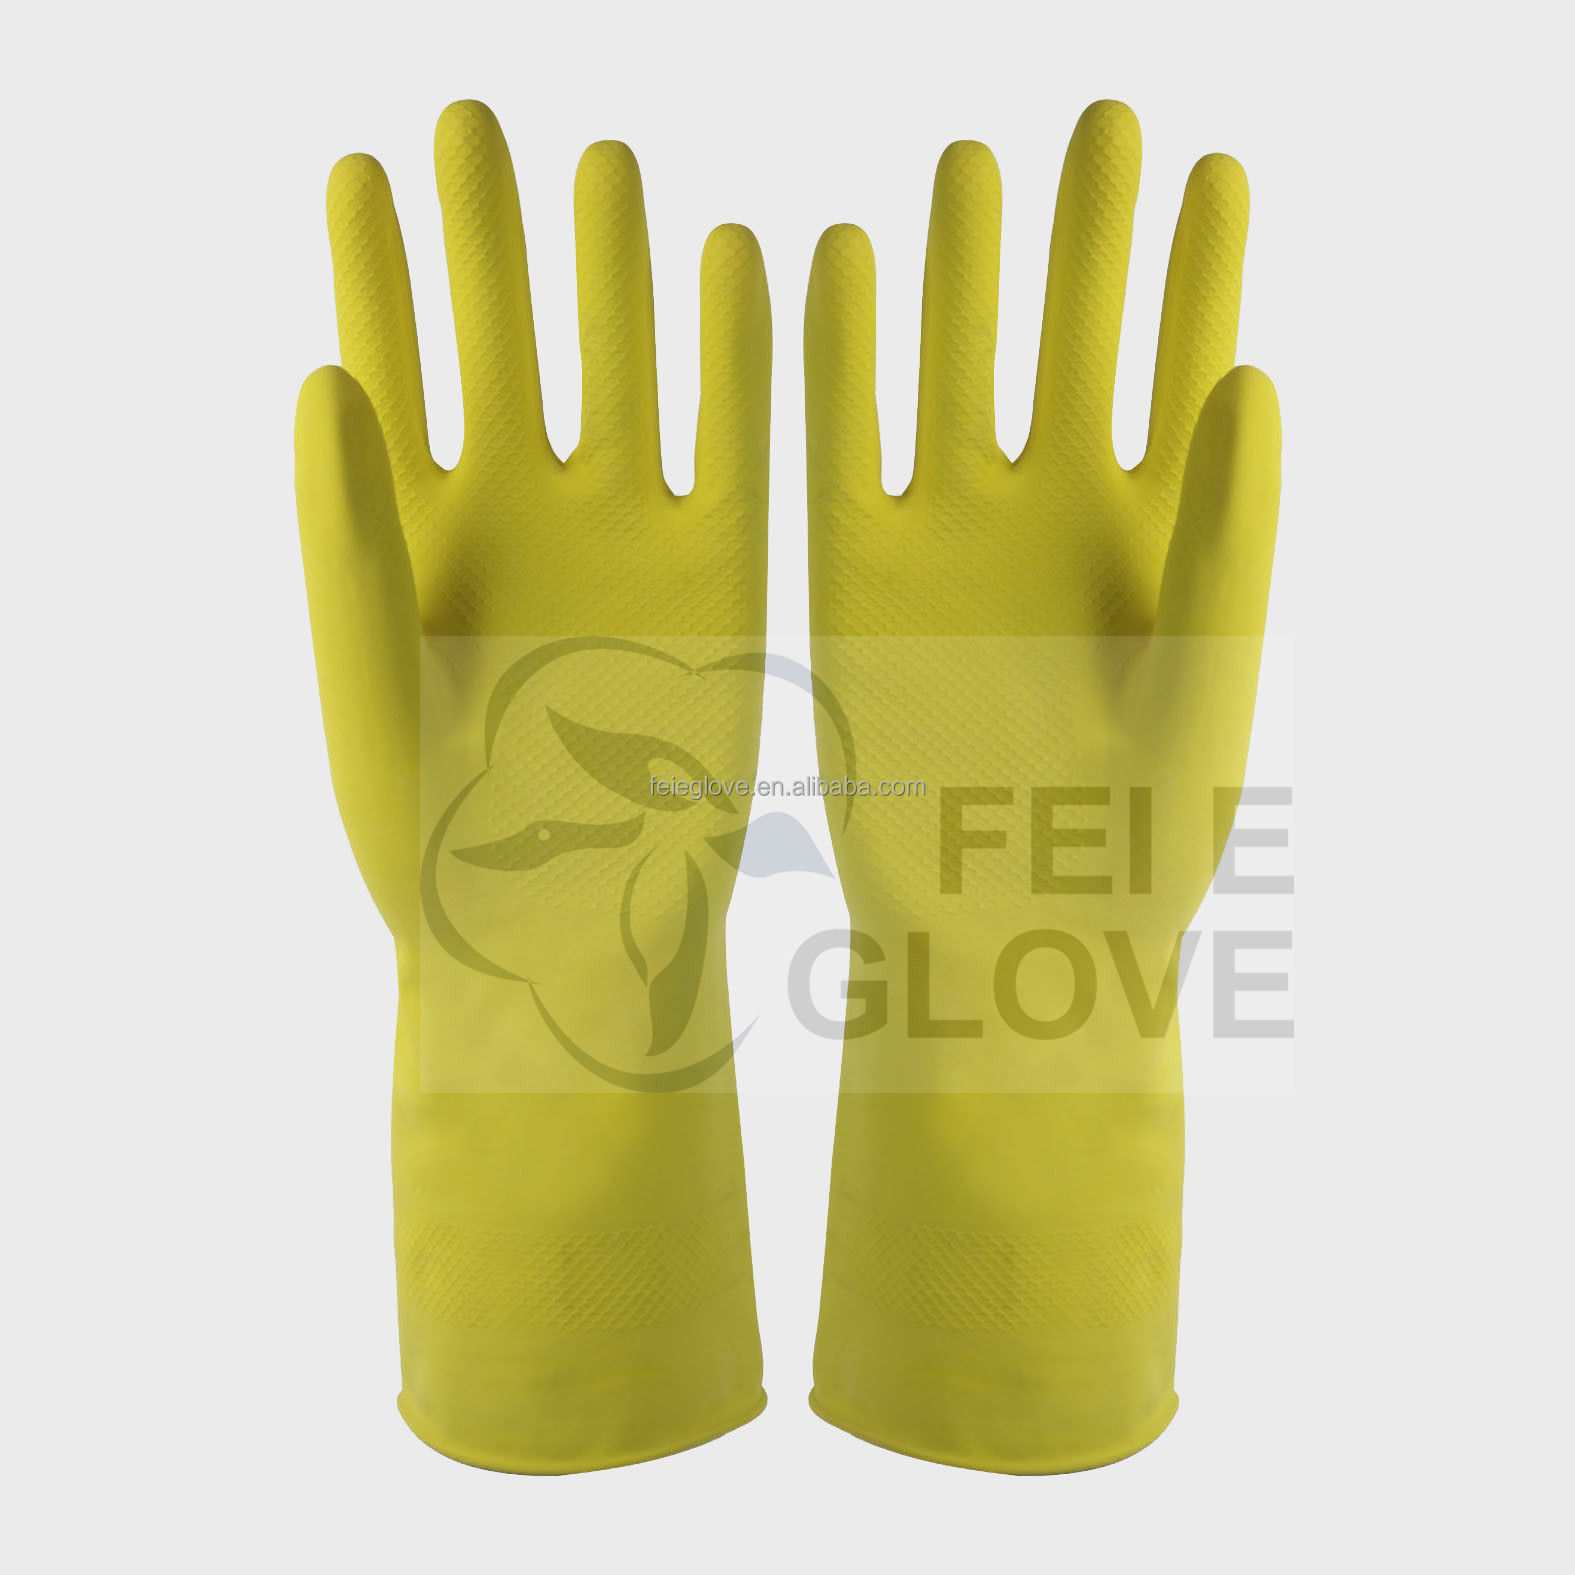 CE 50g pink colour spray flocklined cleaning clothes latex gloves rubber gloves manufactuer /factory